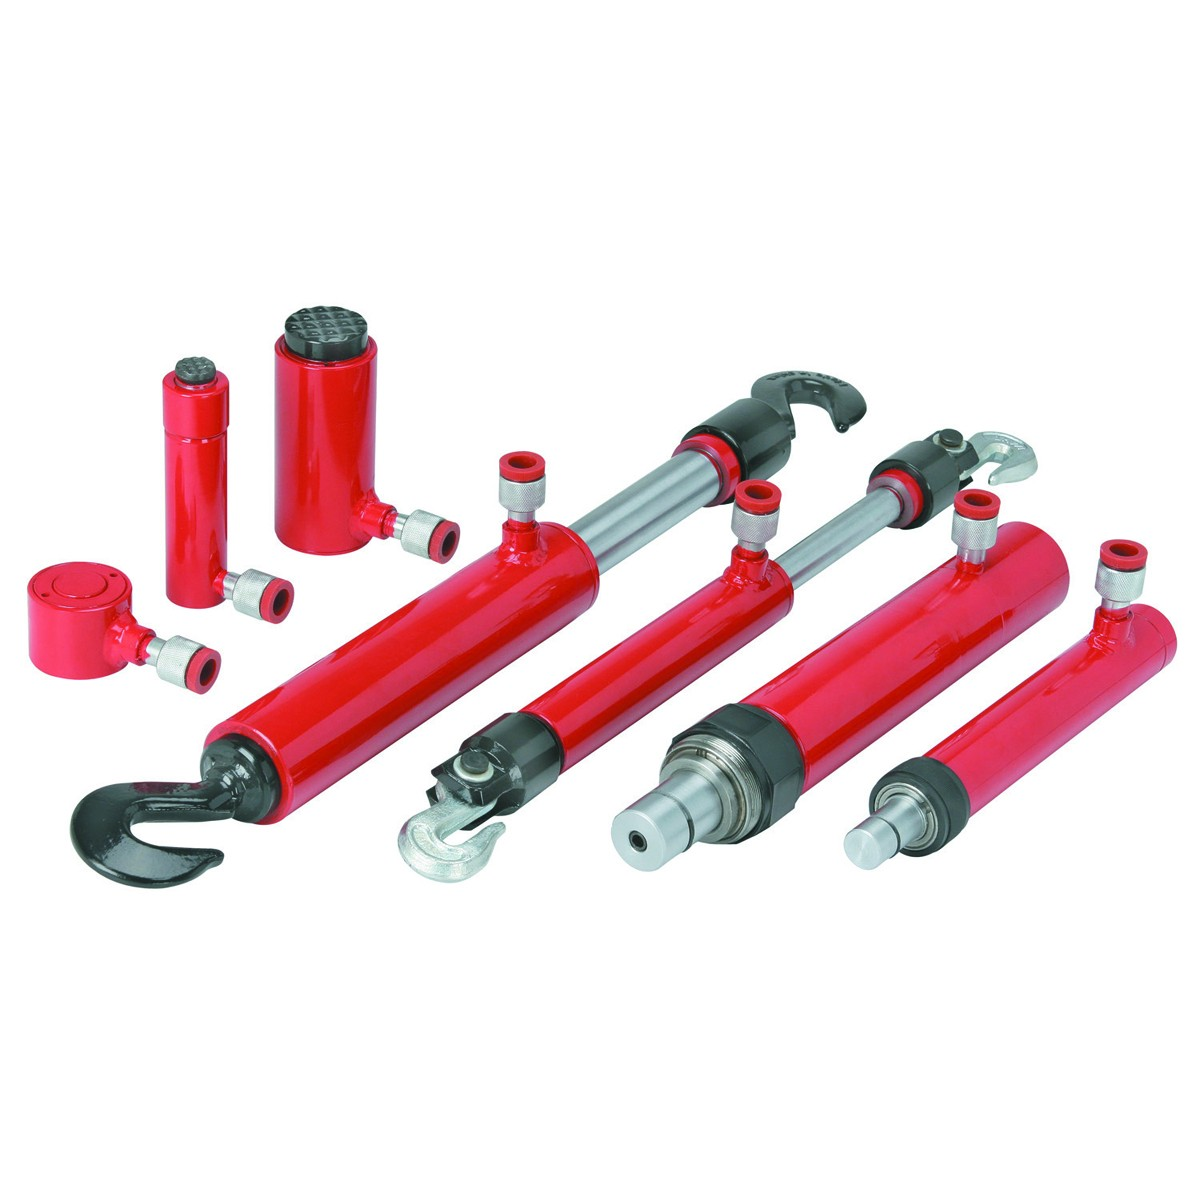 7 Pc Hydraulic Auto Body/Frame Repair Kit - Walmart.com